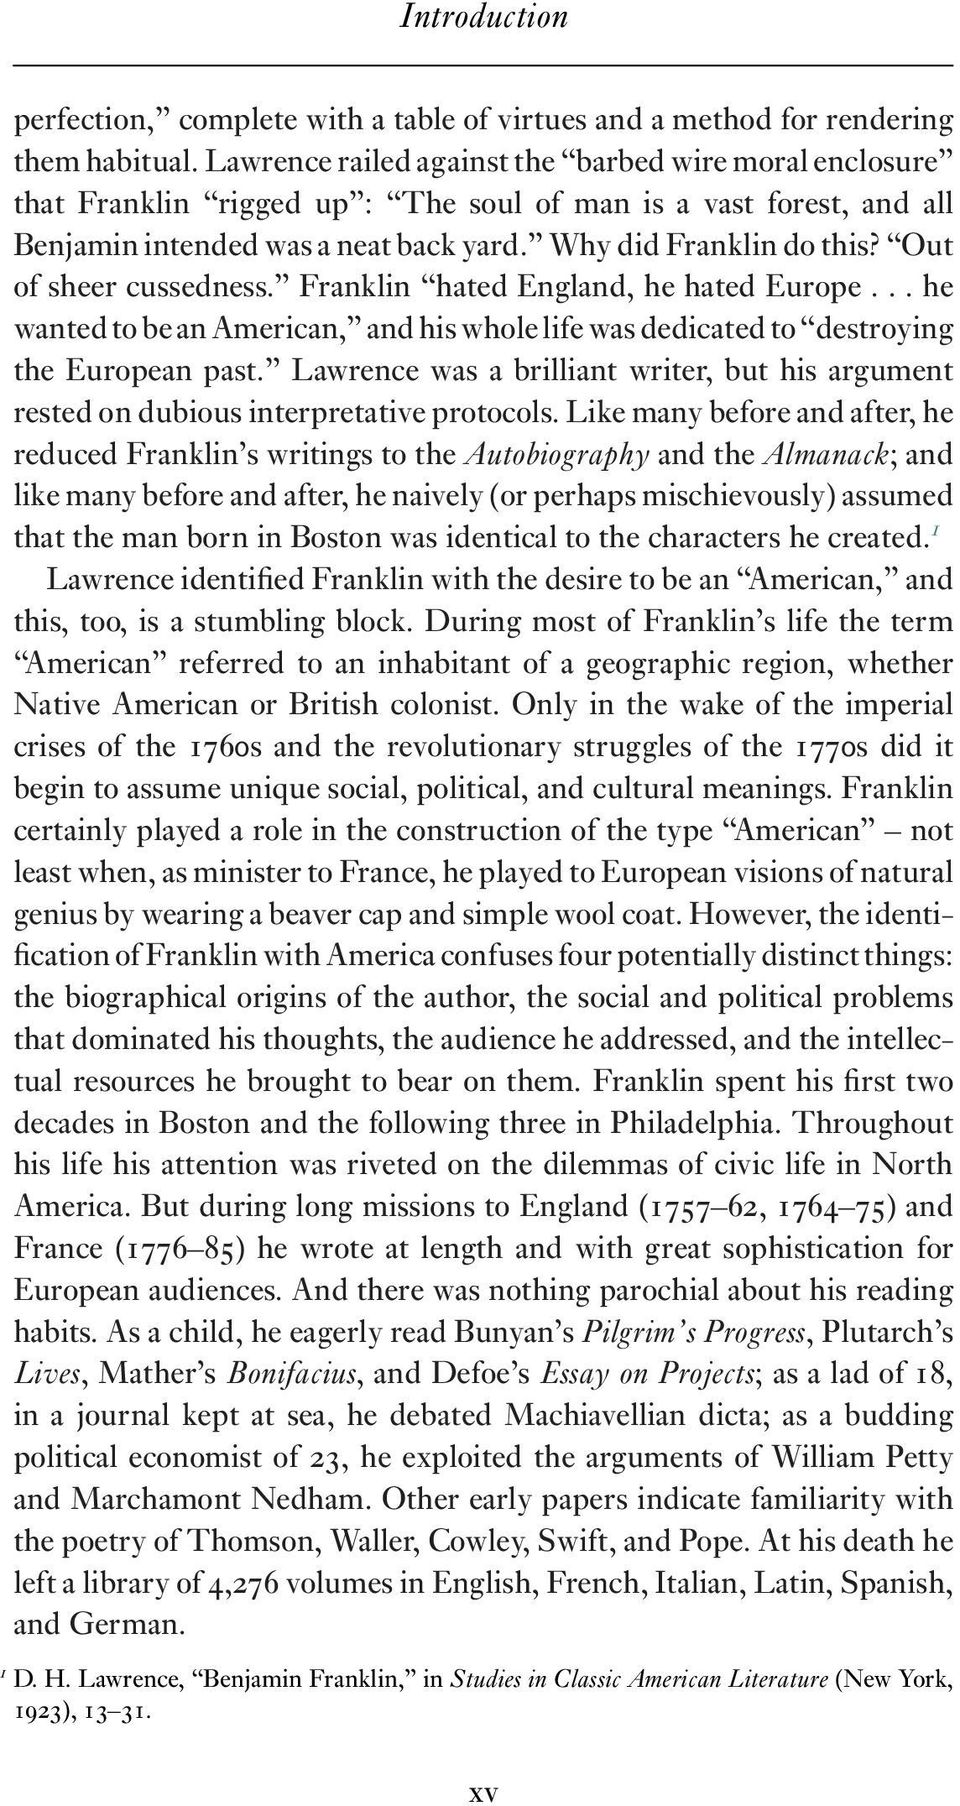 Out of sheer cussedness. Franklin hated England, he hated Europe... he wanted to be an American, and his whole life was dedicated to destroying the European past.